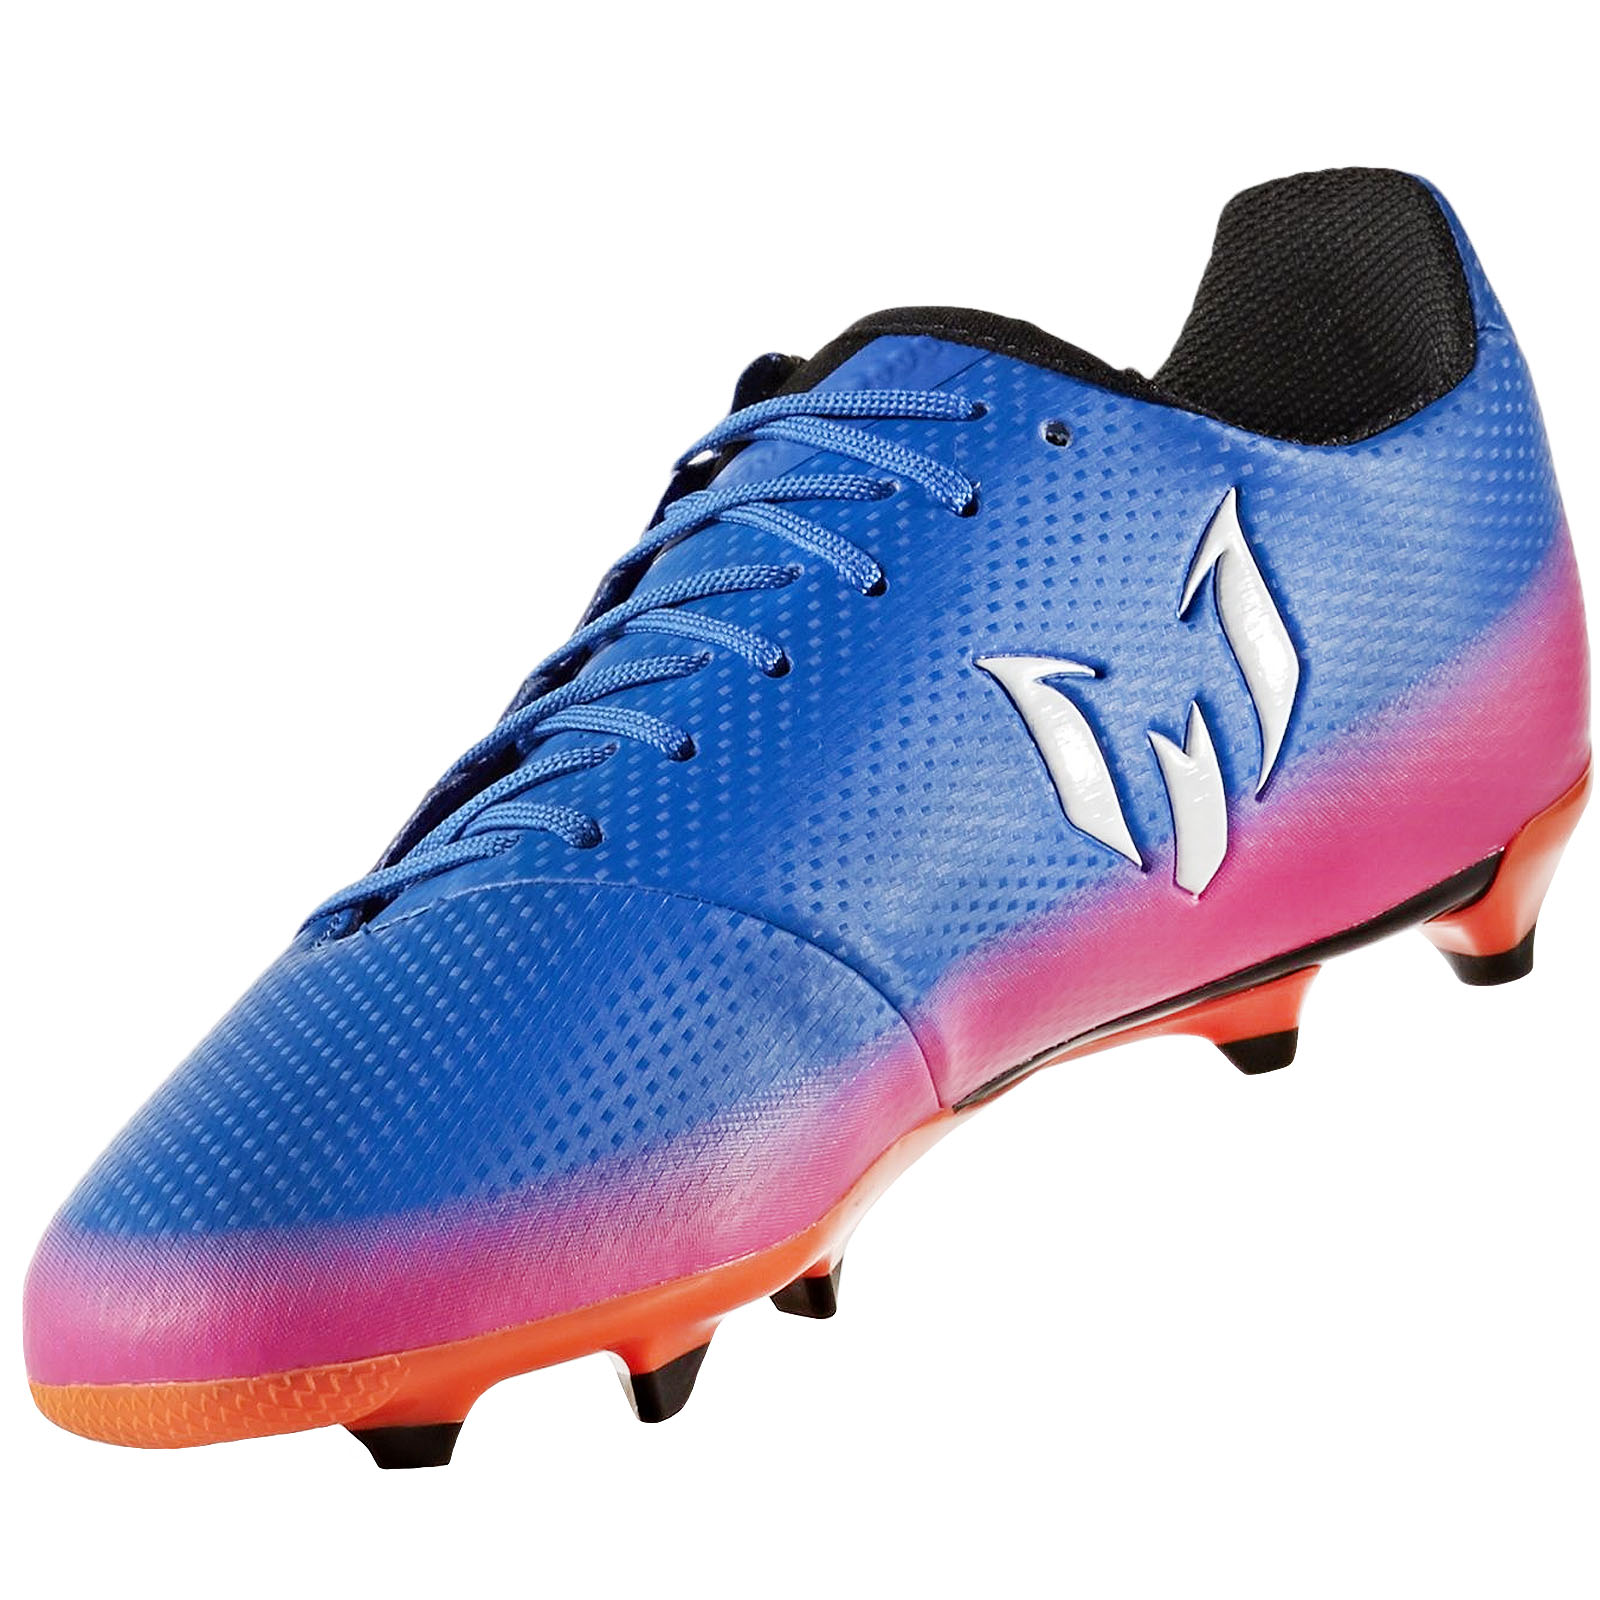 d4a0af52f Schuhe adidas Performance Mens Messi 16.3 FG Soccer Training Football Boots  Blue